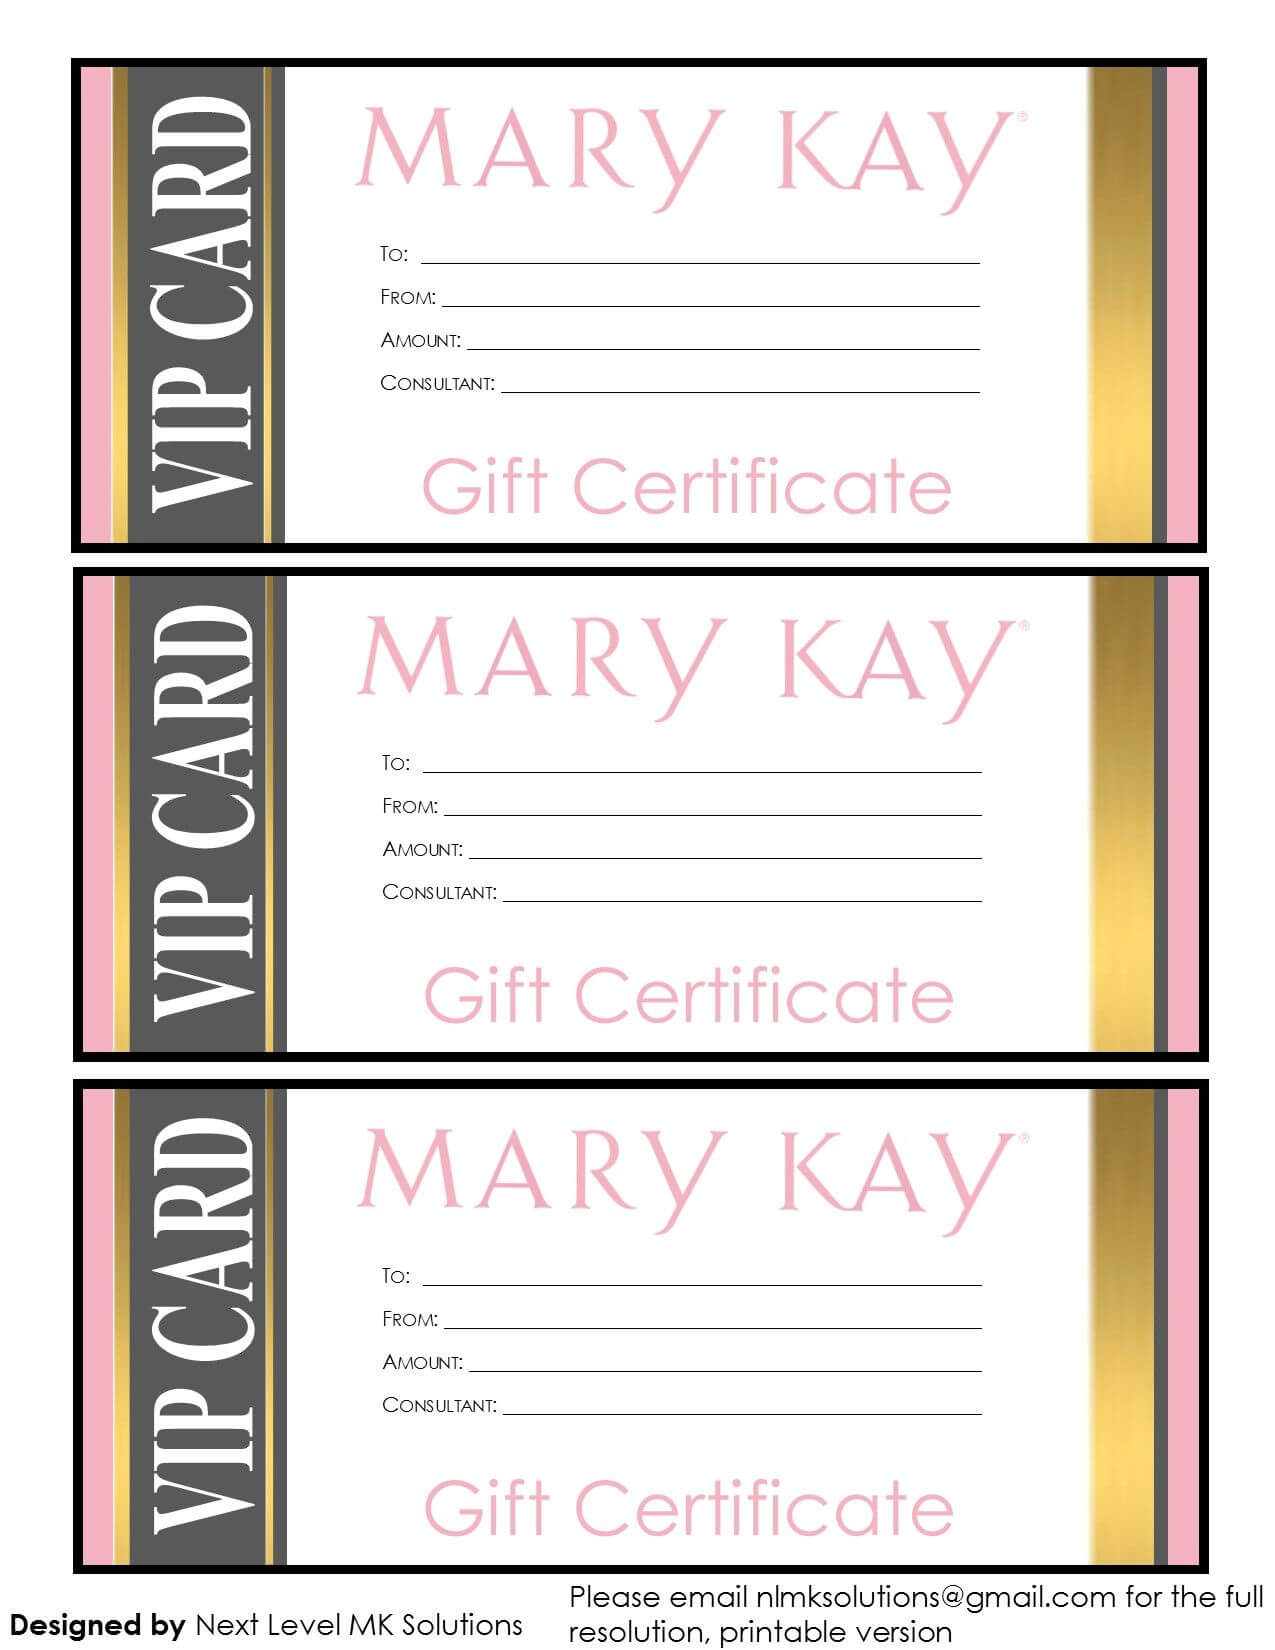 Mary Kay Gift Certificates - Please Email For The Full Pdf Regarding Mary Kay Gift Certificate Template